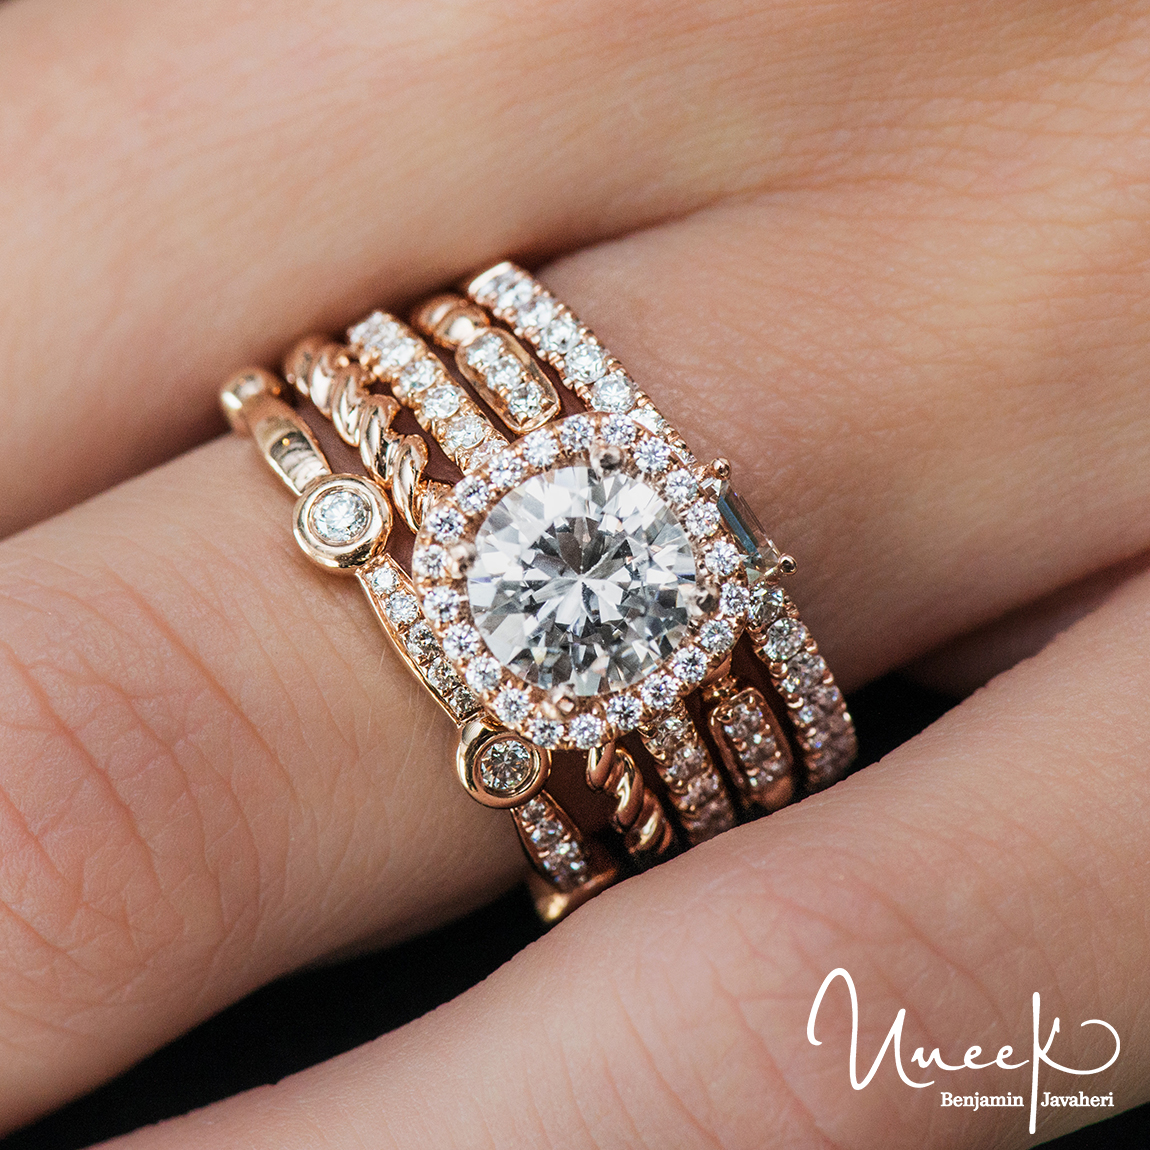 Wedding Band Shopping Tips for Guys: Take It from the Ladies